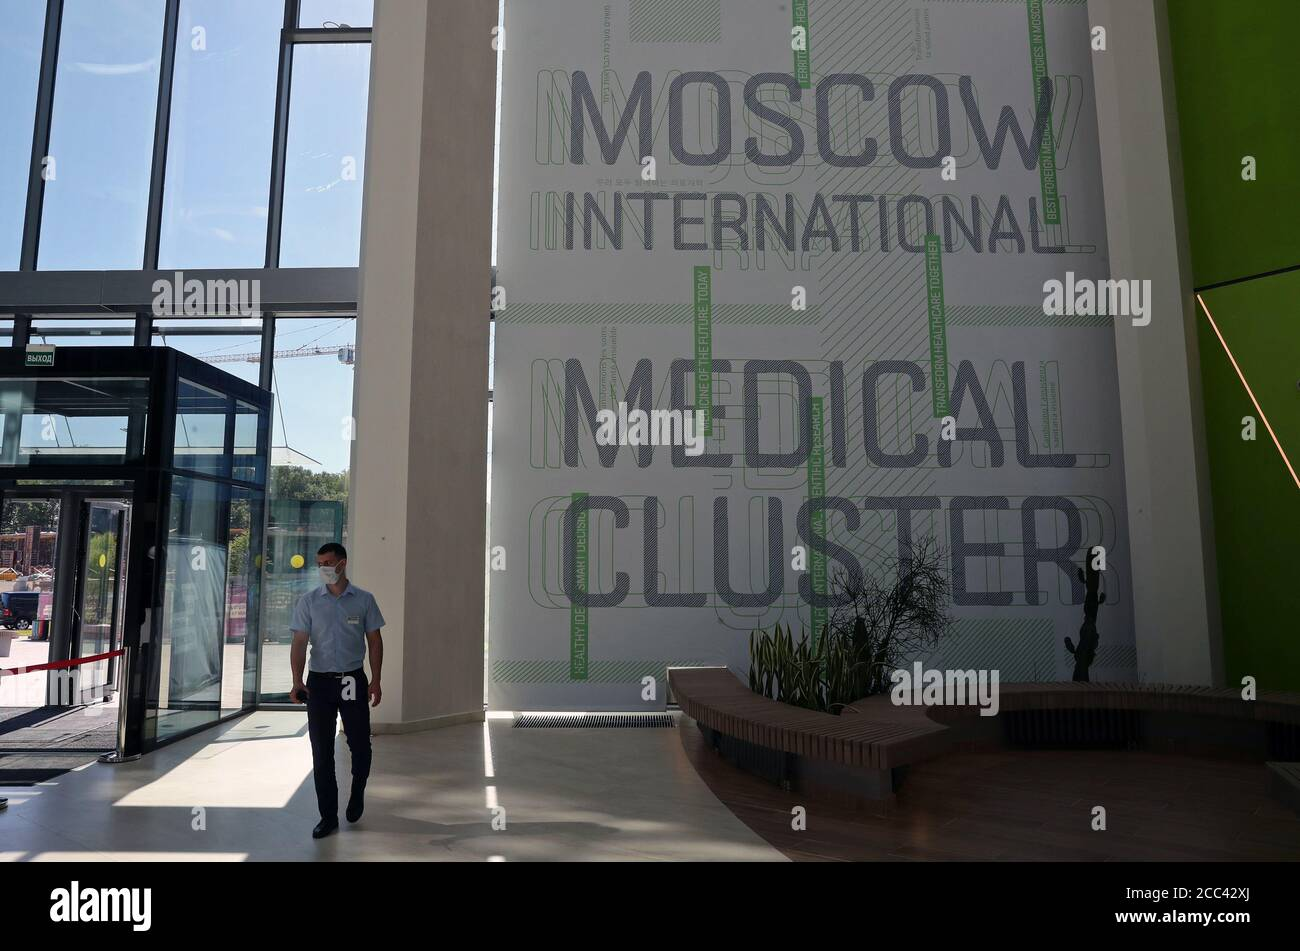 Moskau, Russland. August 2020. Die Moskauer Niederlassung des israelischen Hadassah Medical Center am Moskauer International Medical Cluster im Skolkovo Innovation Center. Kredit: Mikhail Tereschtschenko/TASS/Alamy Live Nachrichten Stockfoto